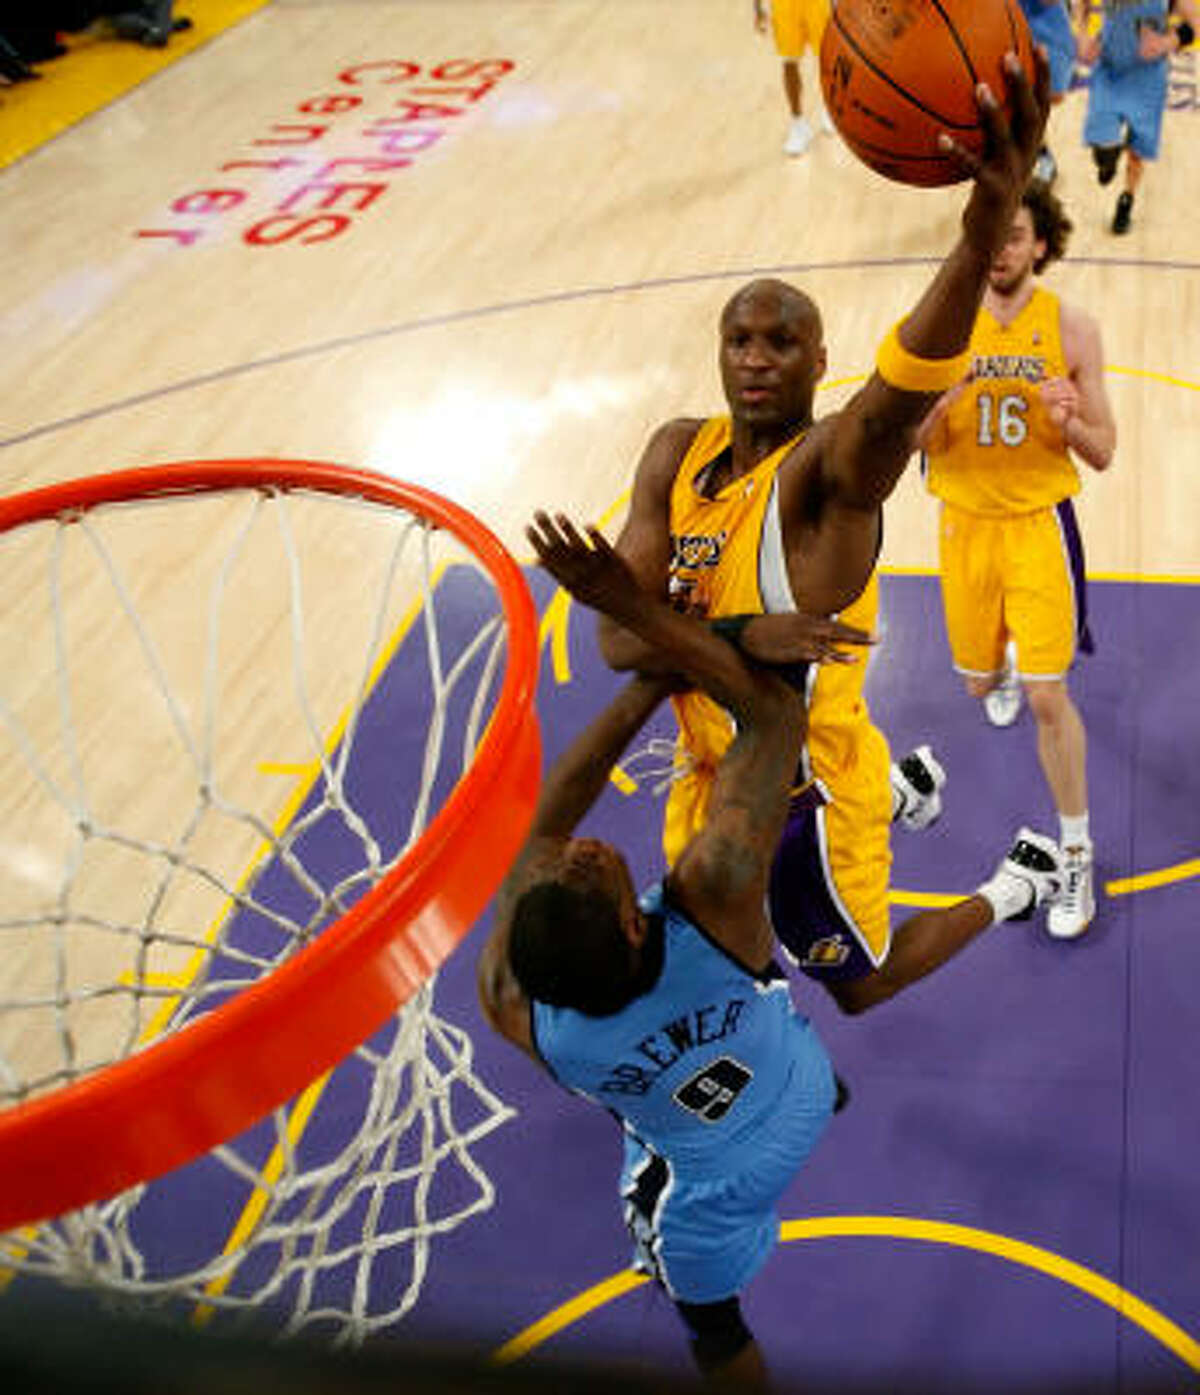 Los Angeles' Lamar Odom goes up for a shot over Utah's Ronnie Brewer in the first half.